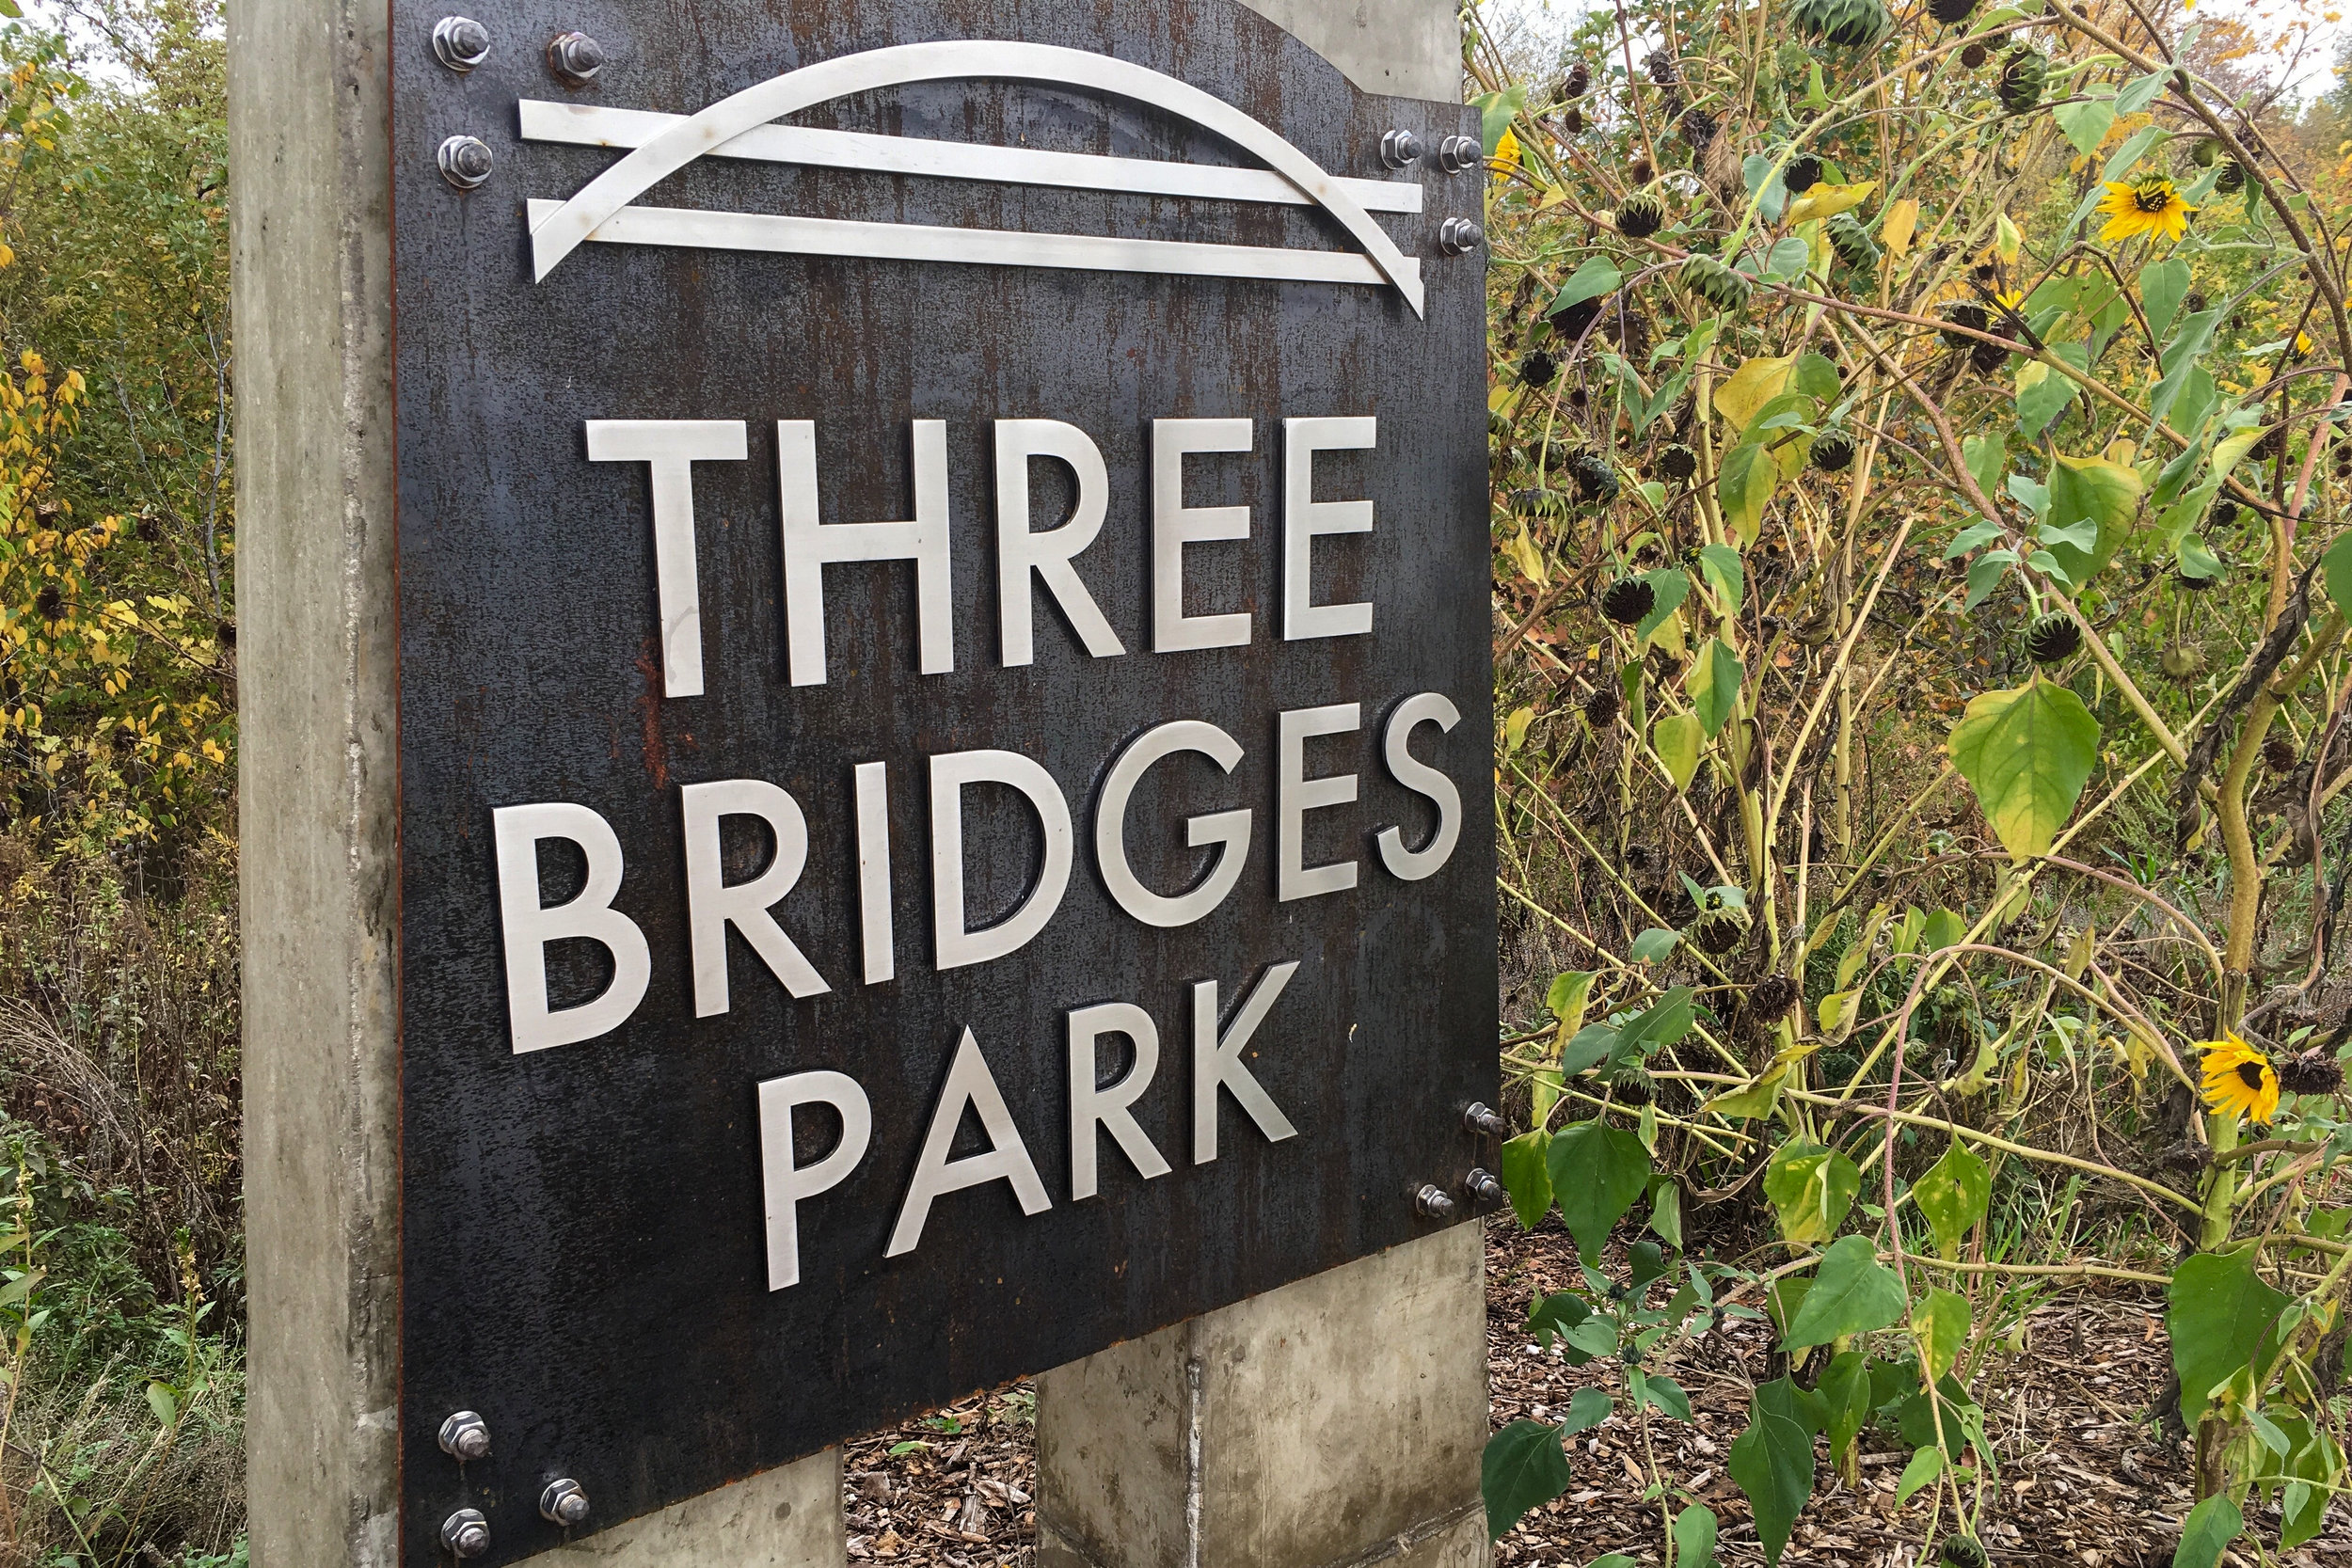 Three Bridges Park